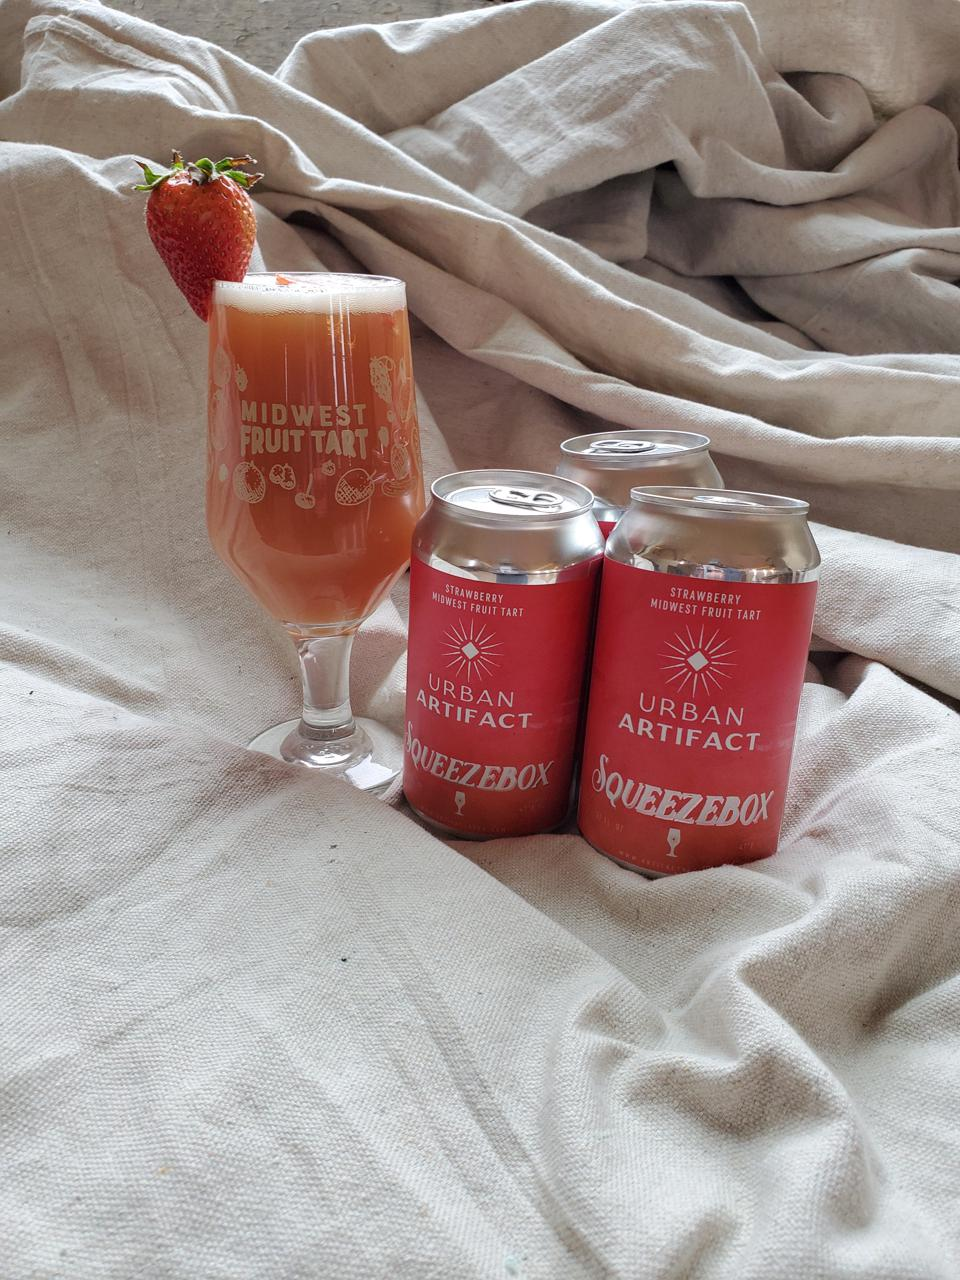 Cincinnati's Urban Artifact Brewing toes the line between beer and straight fruit puree in its strawberry-filled Squeezebox, a favorite of Tavour beer expert Talia Shapiro.